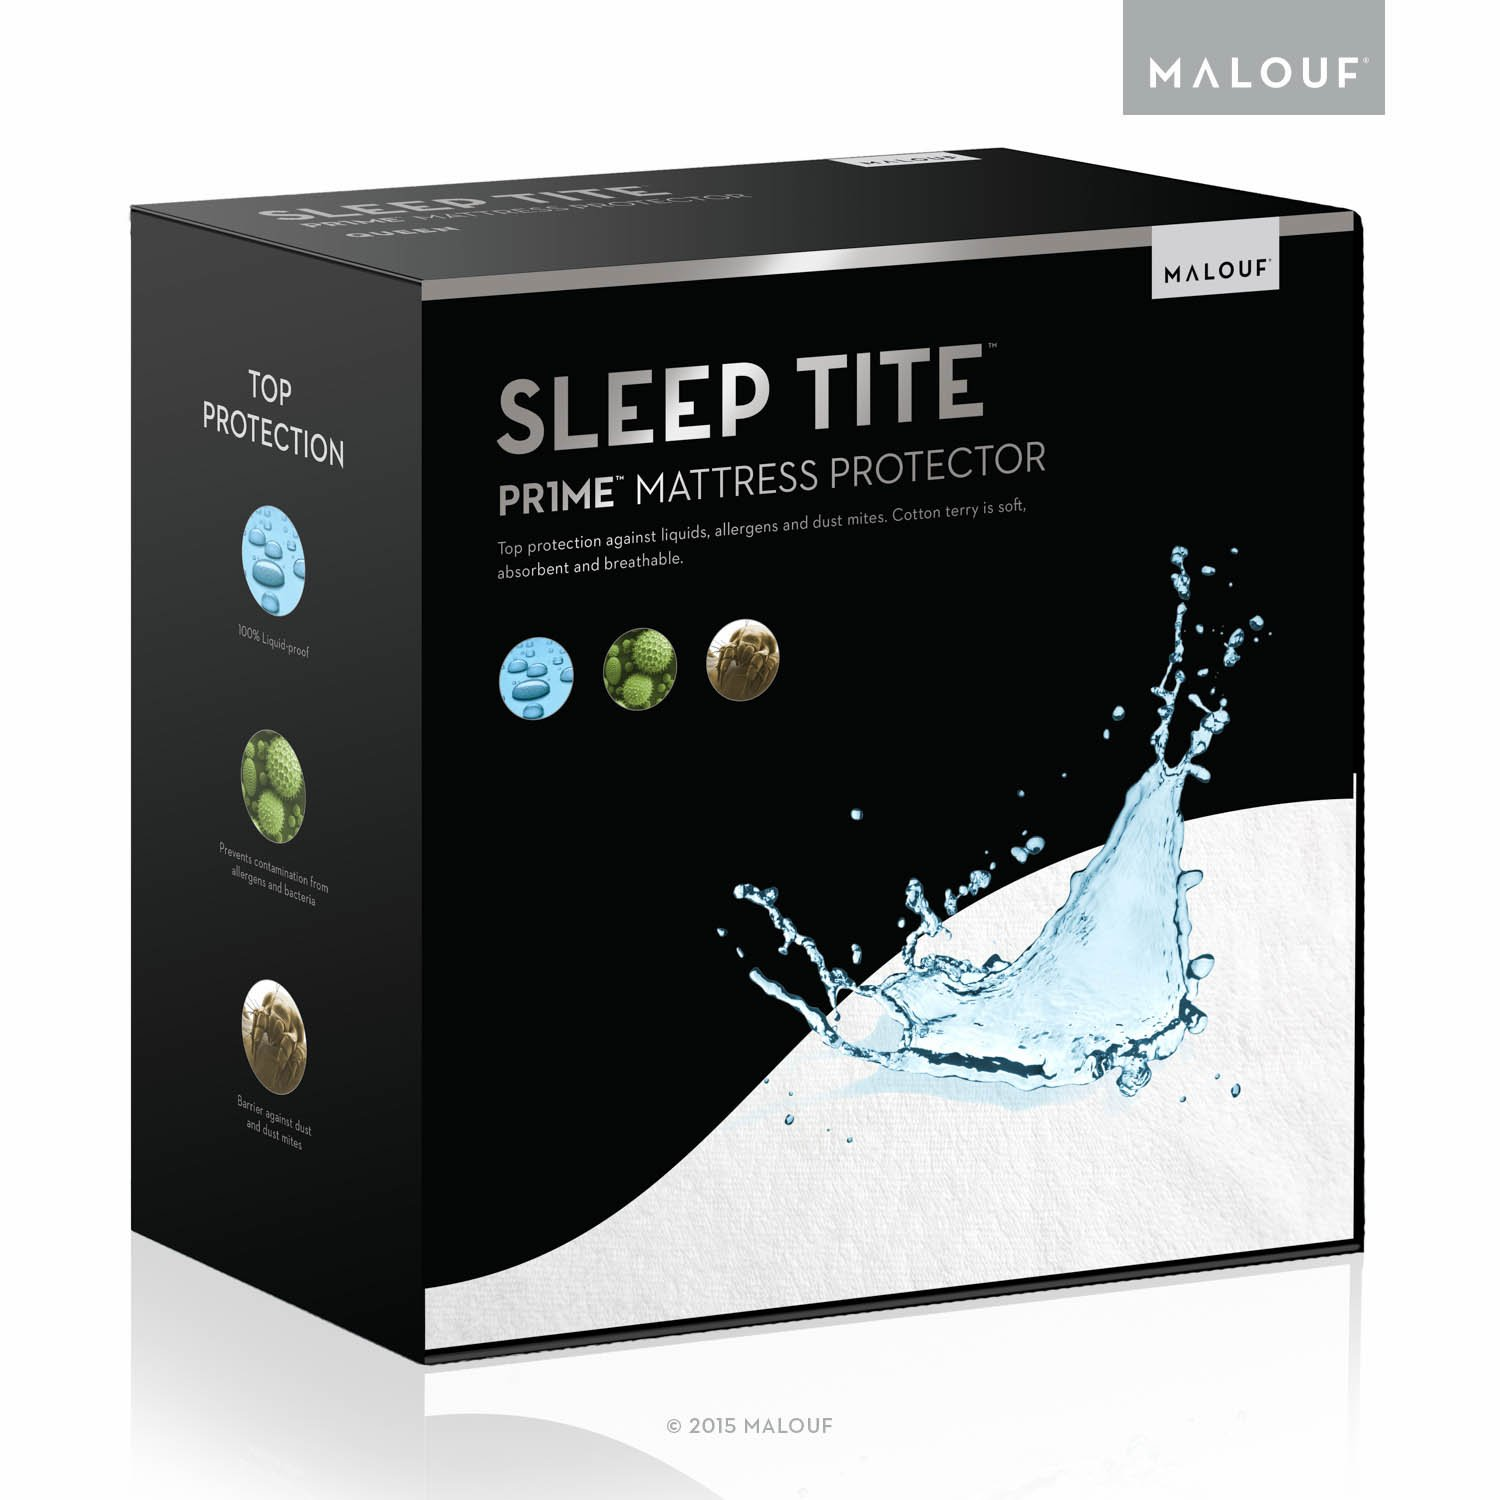 SLEEP TITE by Malouf Mattress Protector - 100% Waterproof-Eliminates Dust Mites -15 Year Warranty, size Full XL CVB Inc SL00FXMP